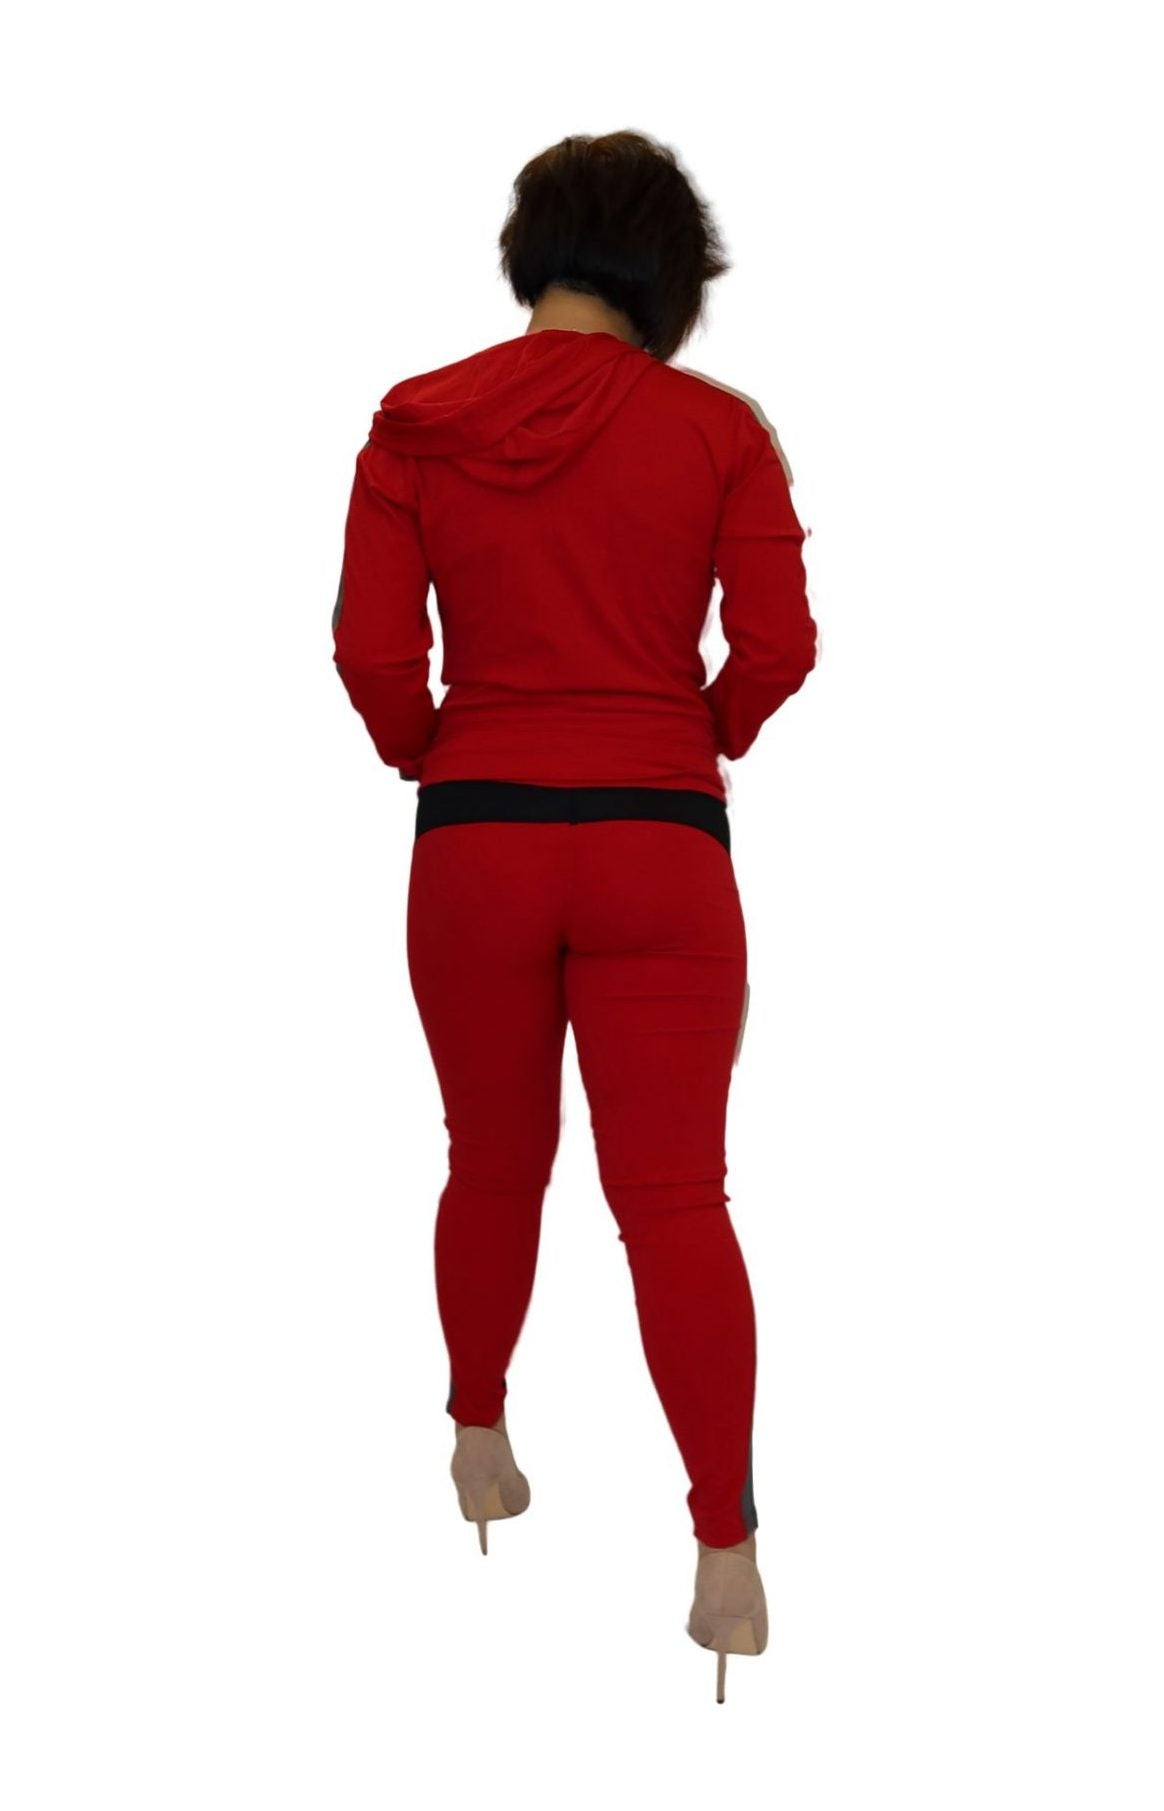 Red 3 piece sweatsuit.